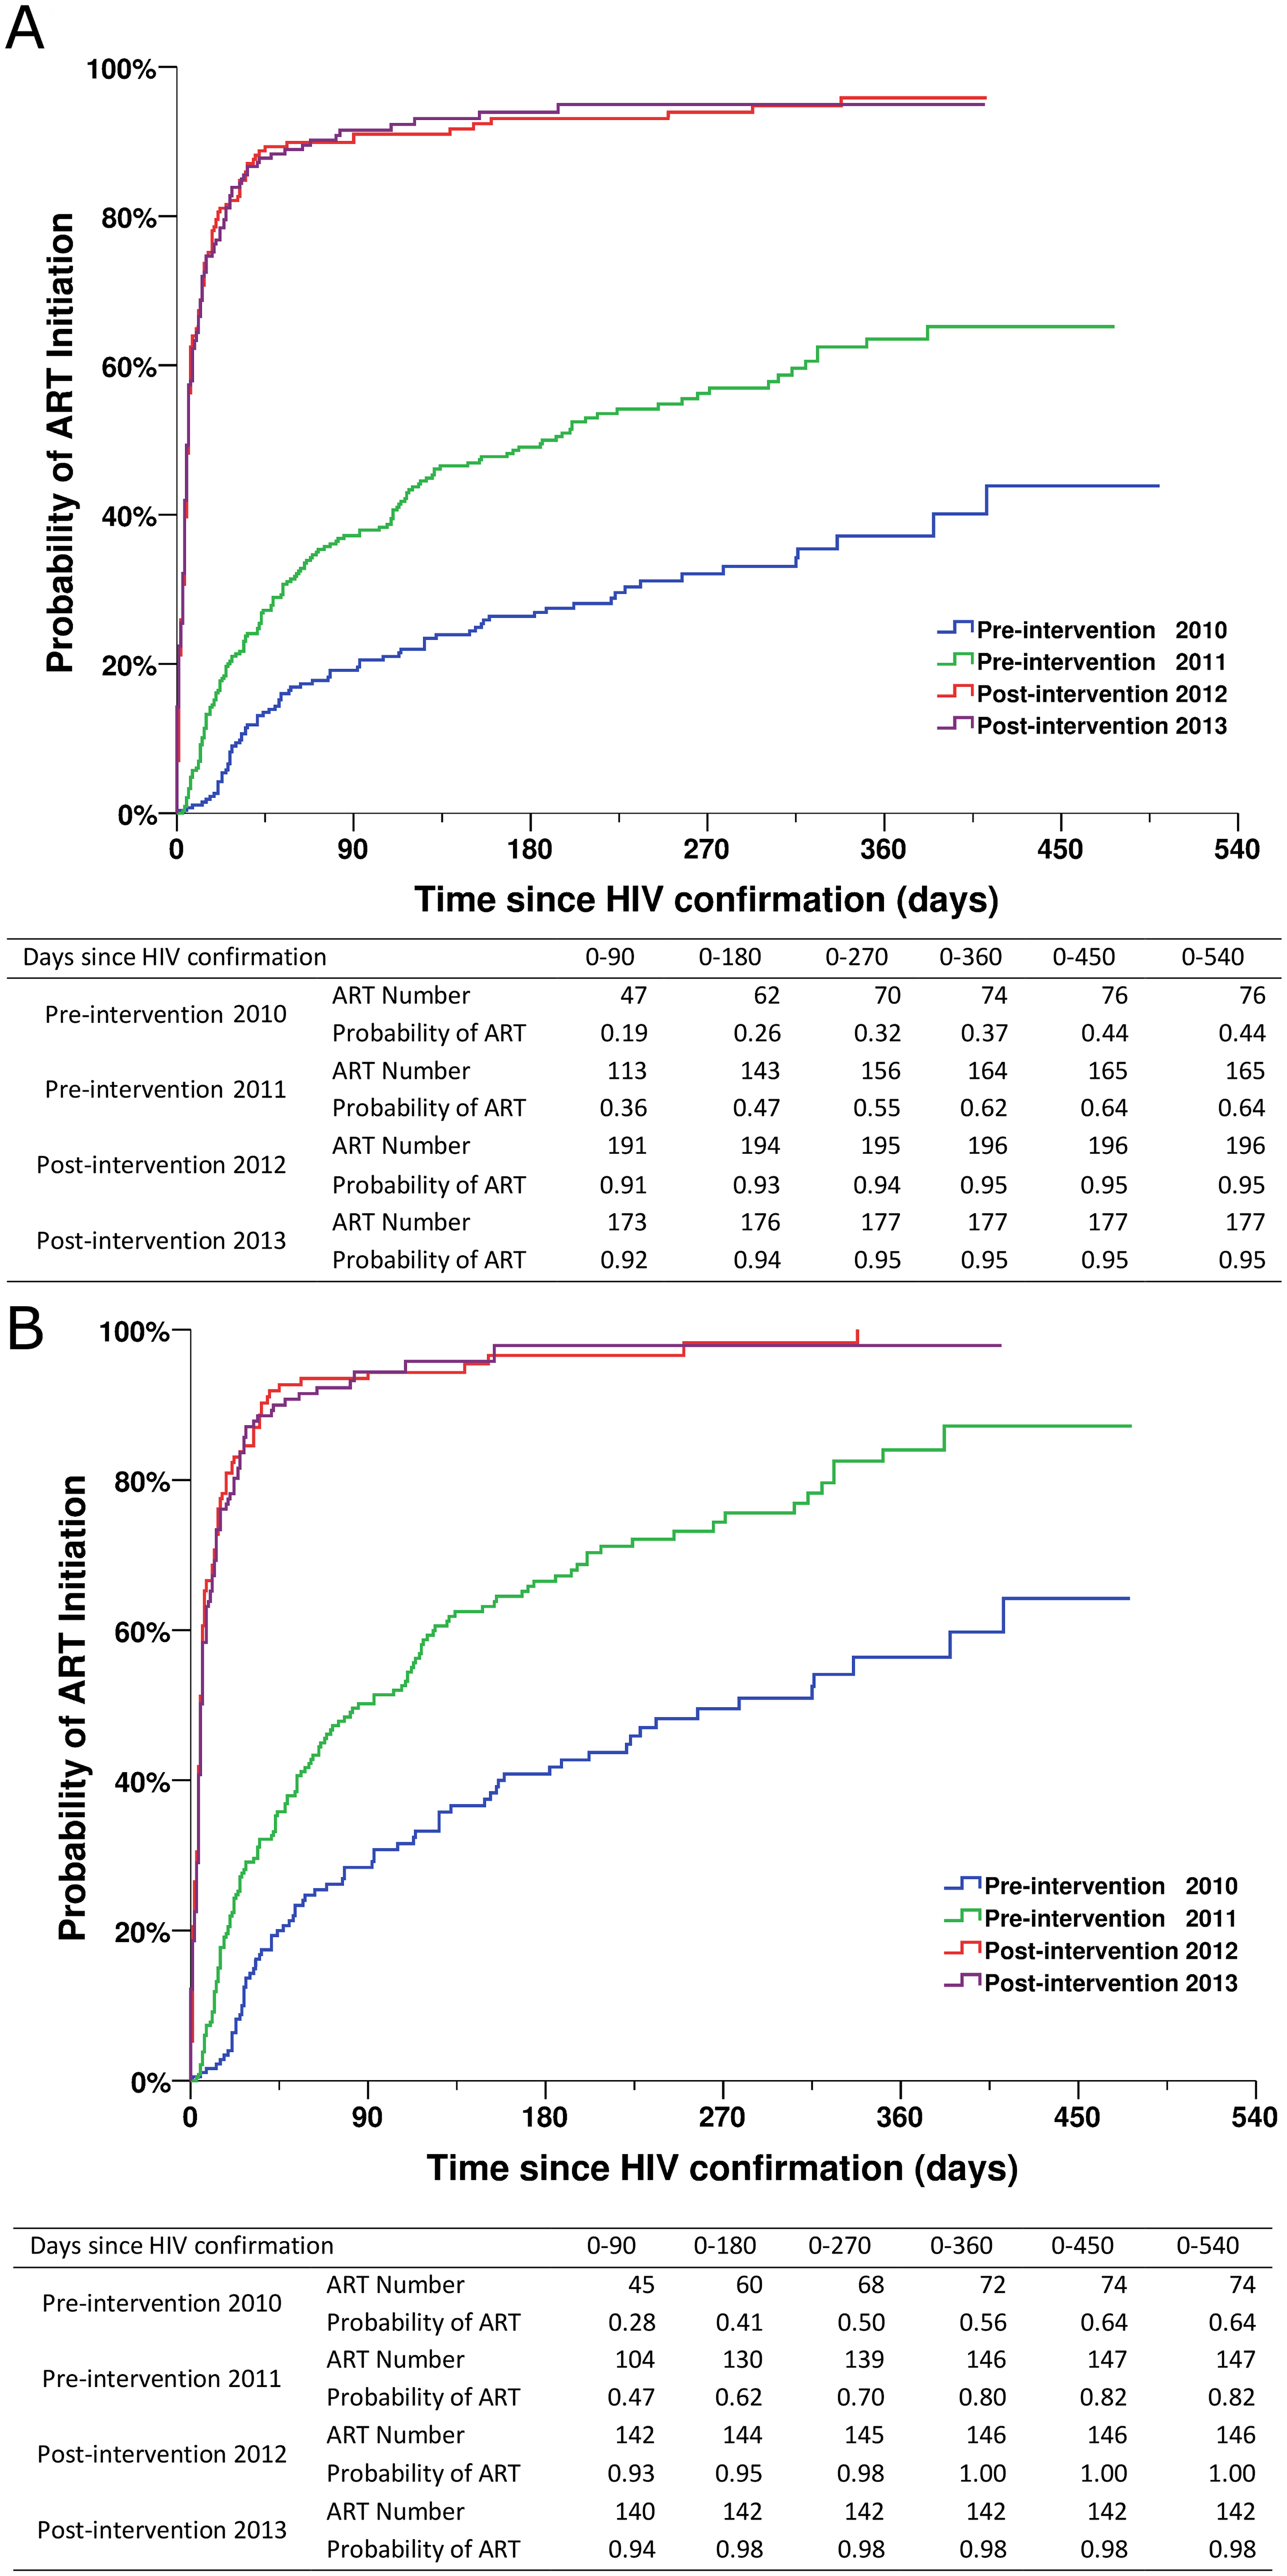 Kaplan-Meier curves for ART initiation for newly diagnosed HIV cases in the pre-intervention 2010, pre-intervention 2011, post-intervention 2012, and post-intervention 2013 phases in Guangxi, China.